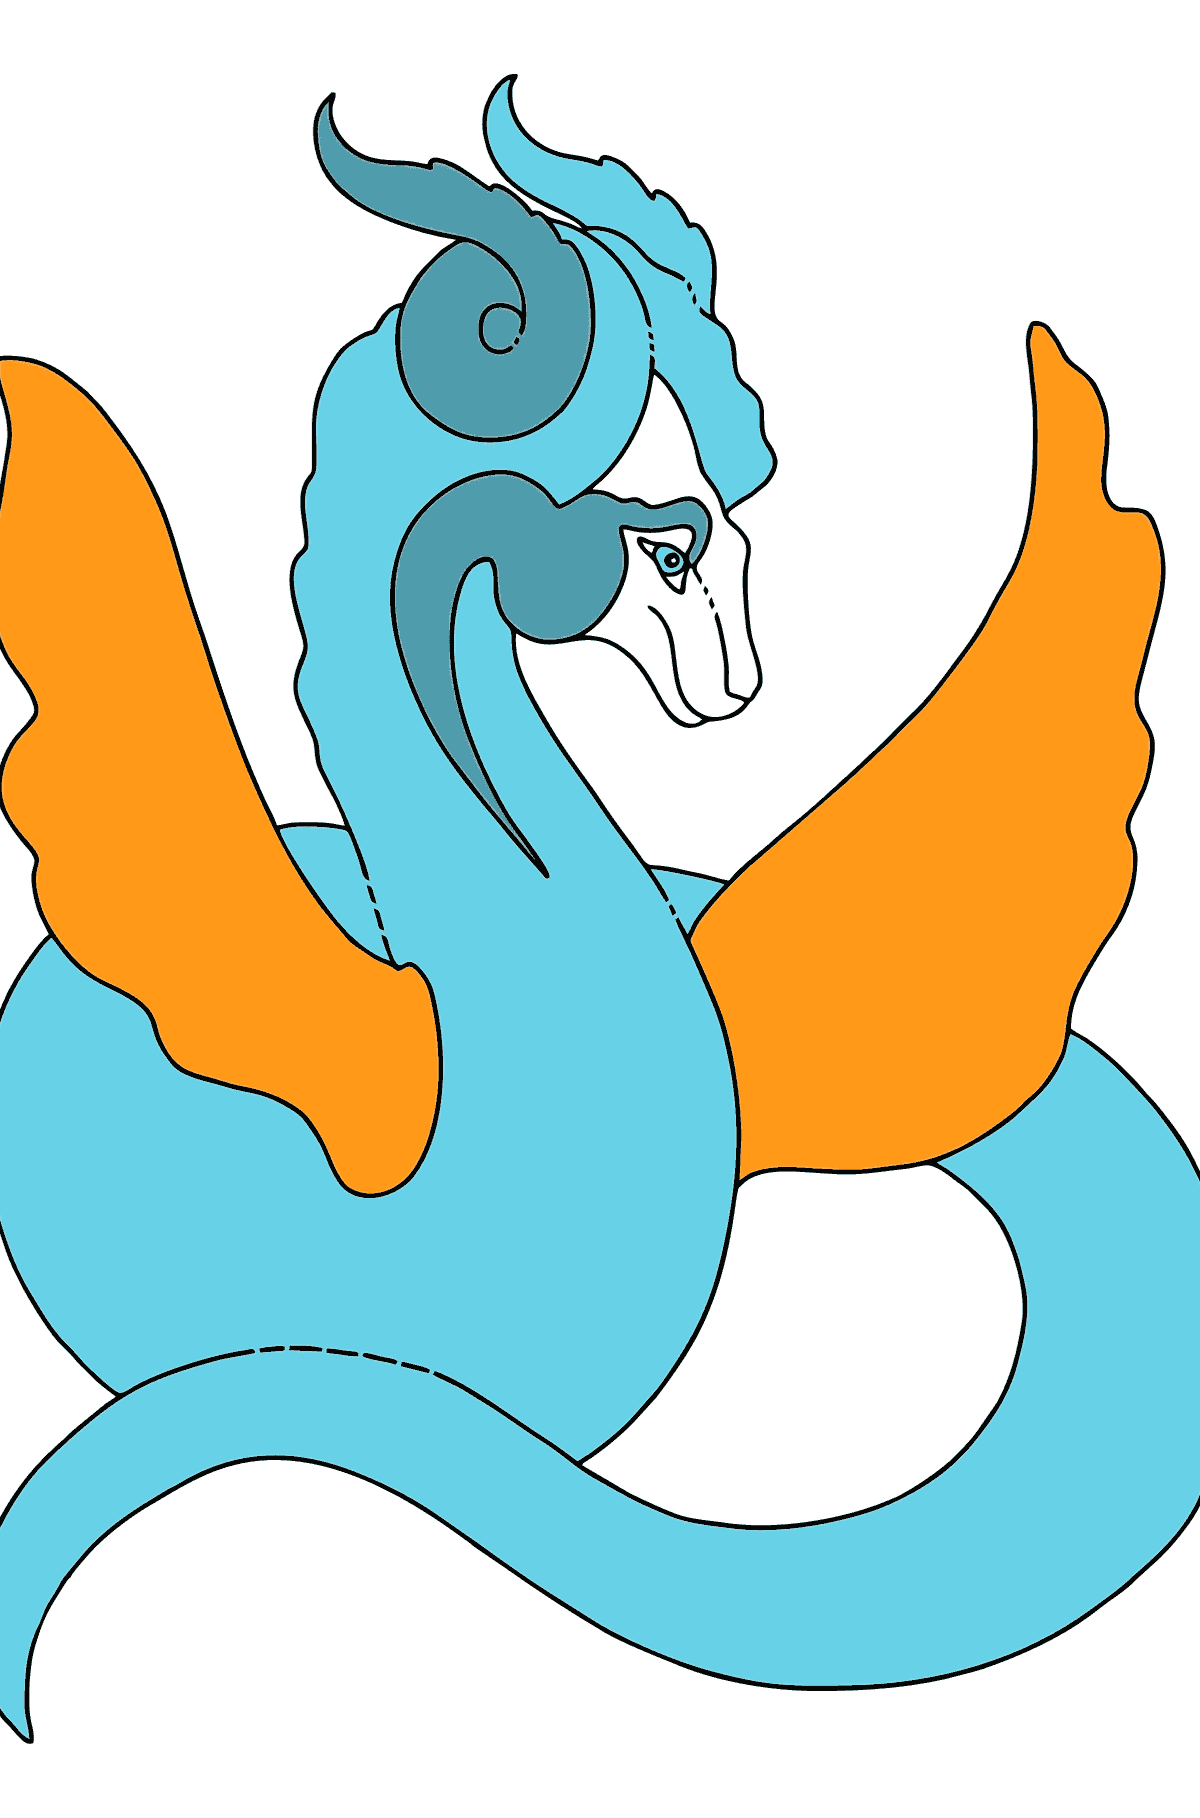 Coloring Page - A Dragon of the Aquamarine Color for Children